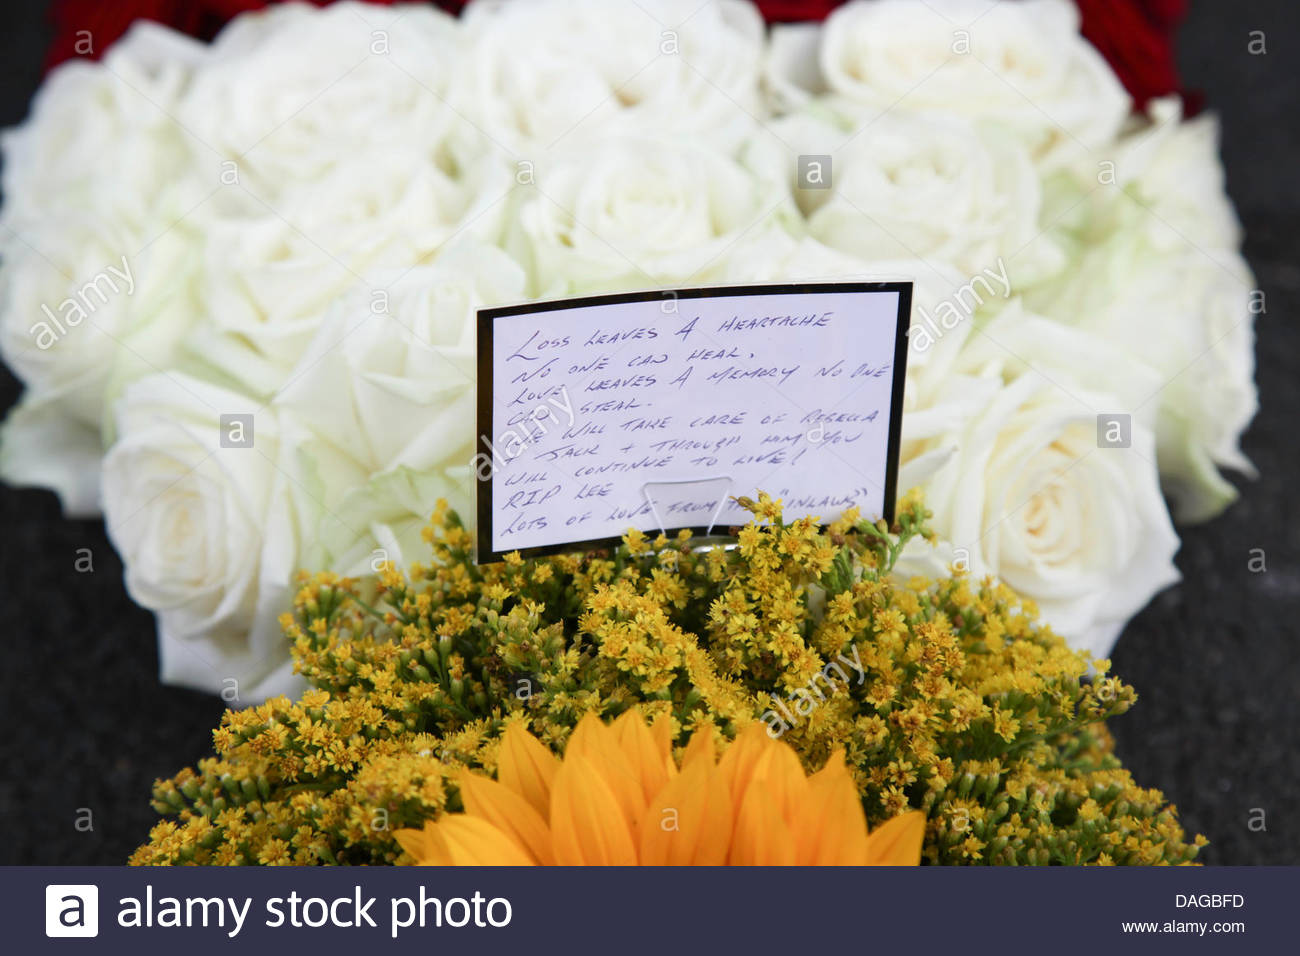 Funeral Flowers Sympathy Stock Photos Funeral Flowers Sympathy